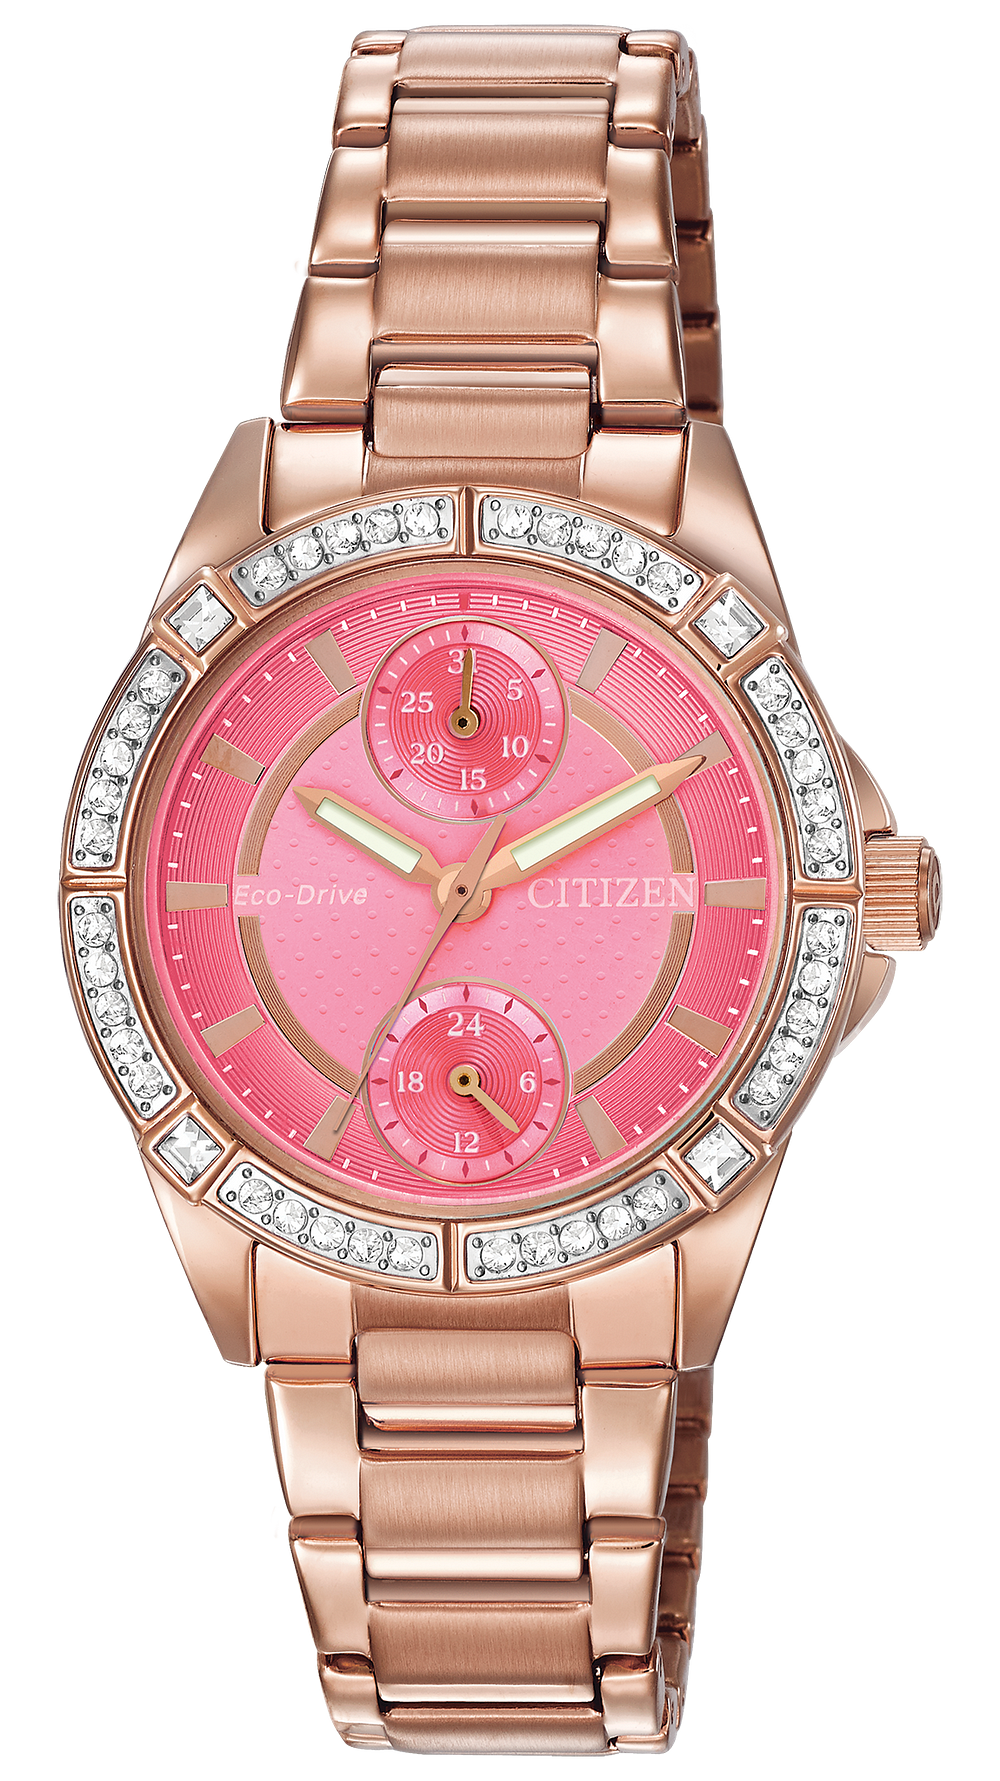 POV - Ladies Eco-Drive Pink Gold Pink Dial Diamond Watch  2465b9132